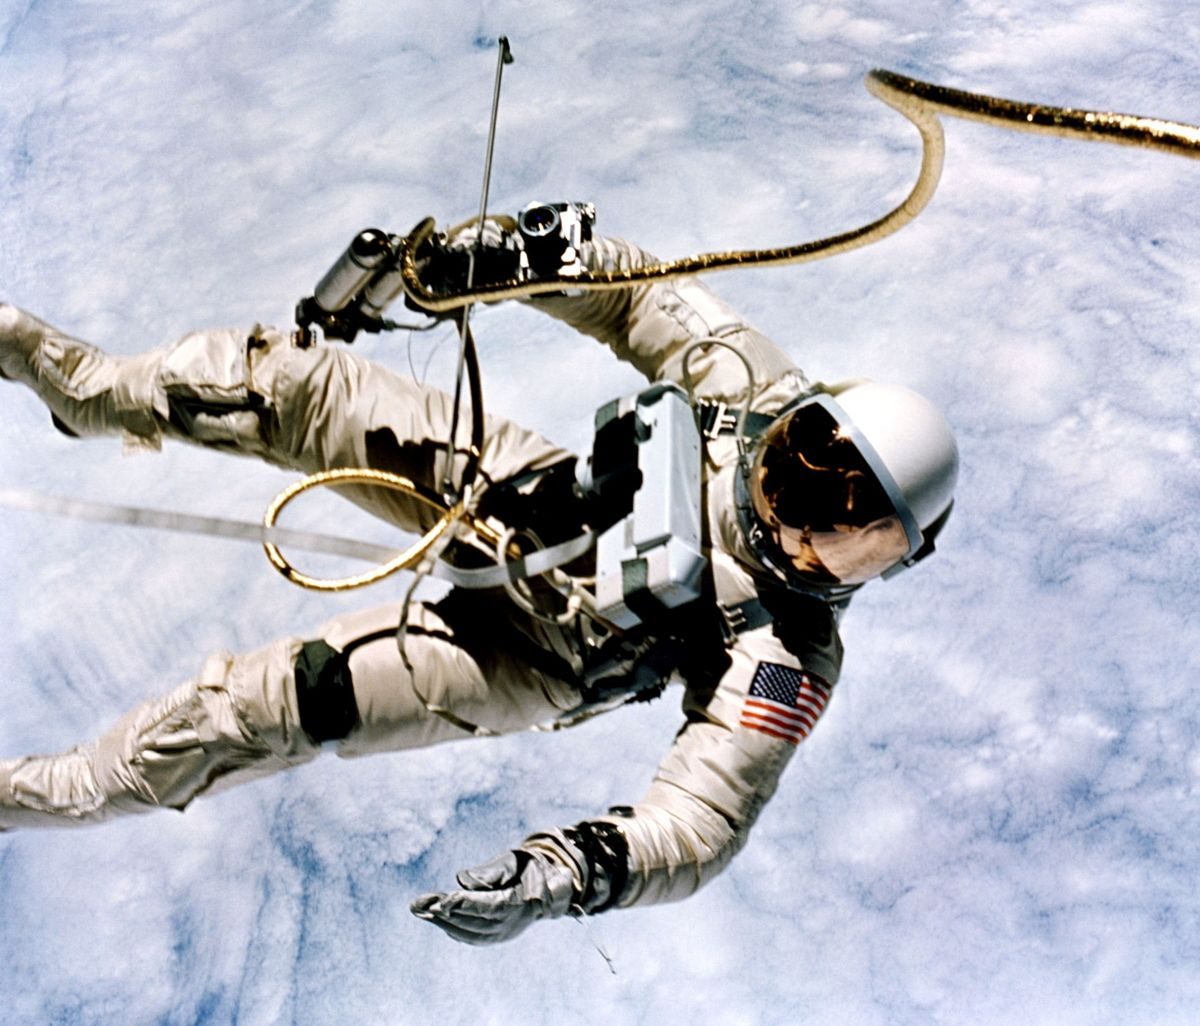 astronaut to space - photo #45